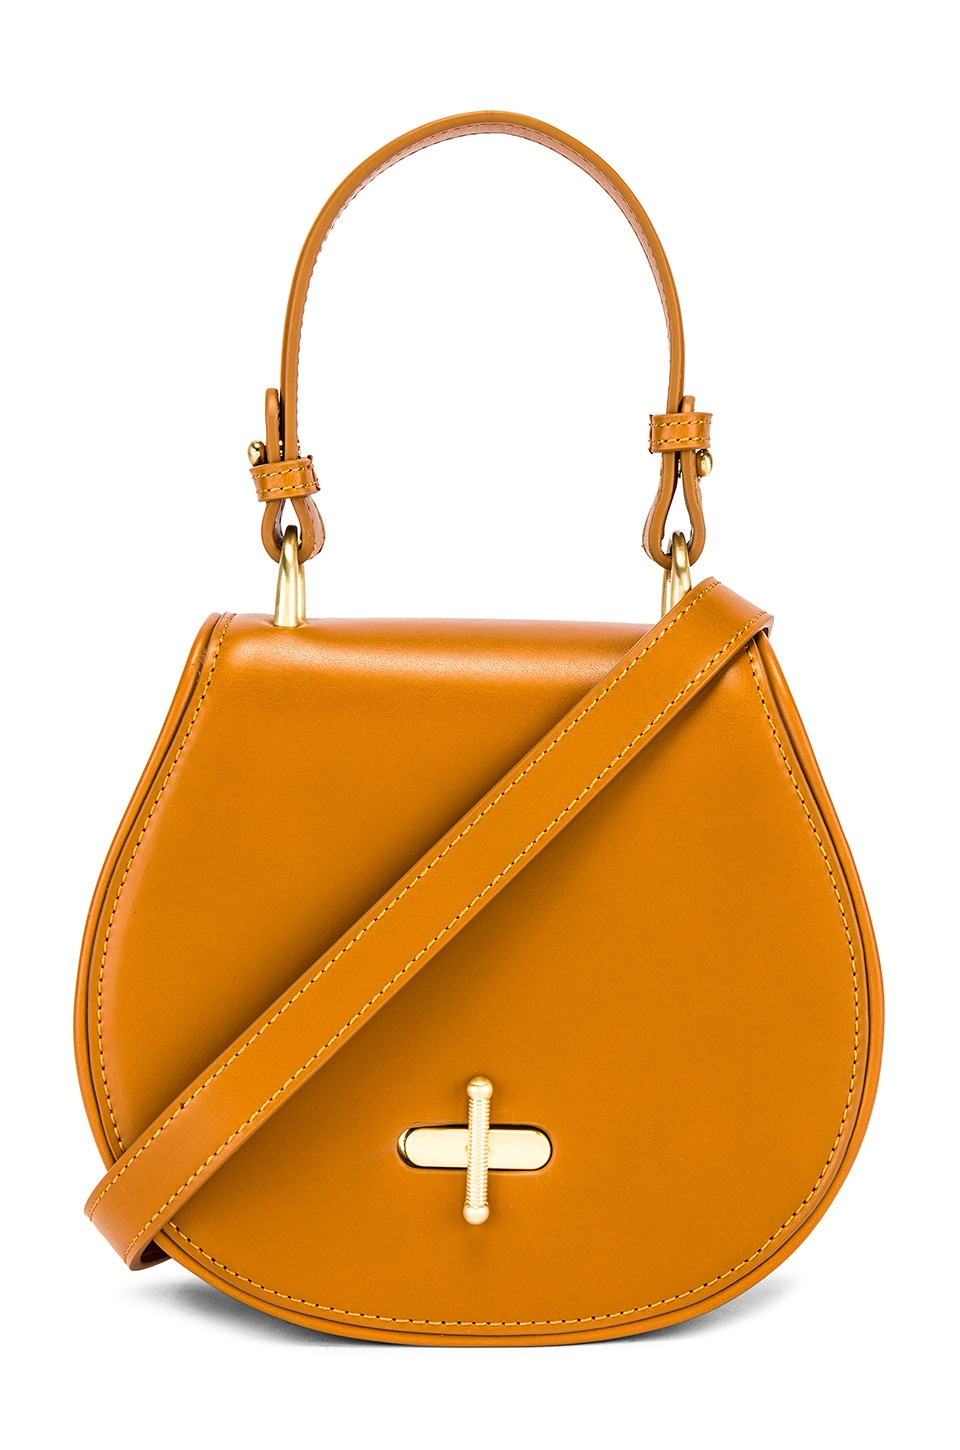 Sancia The Paloma Saddle Bag in Cognac